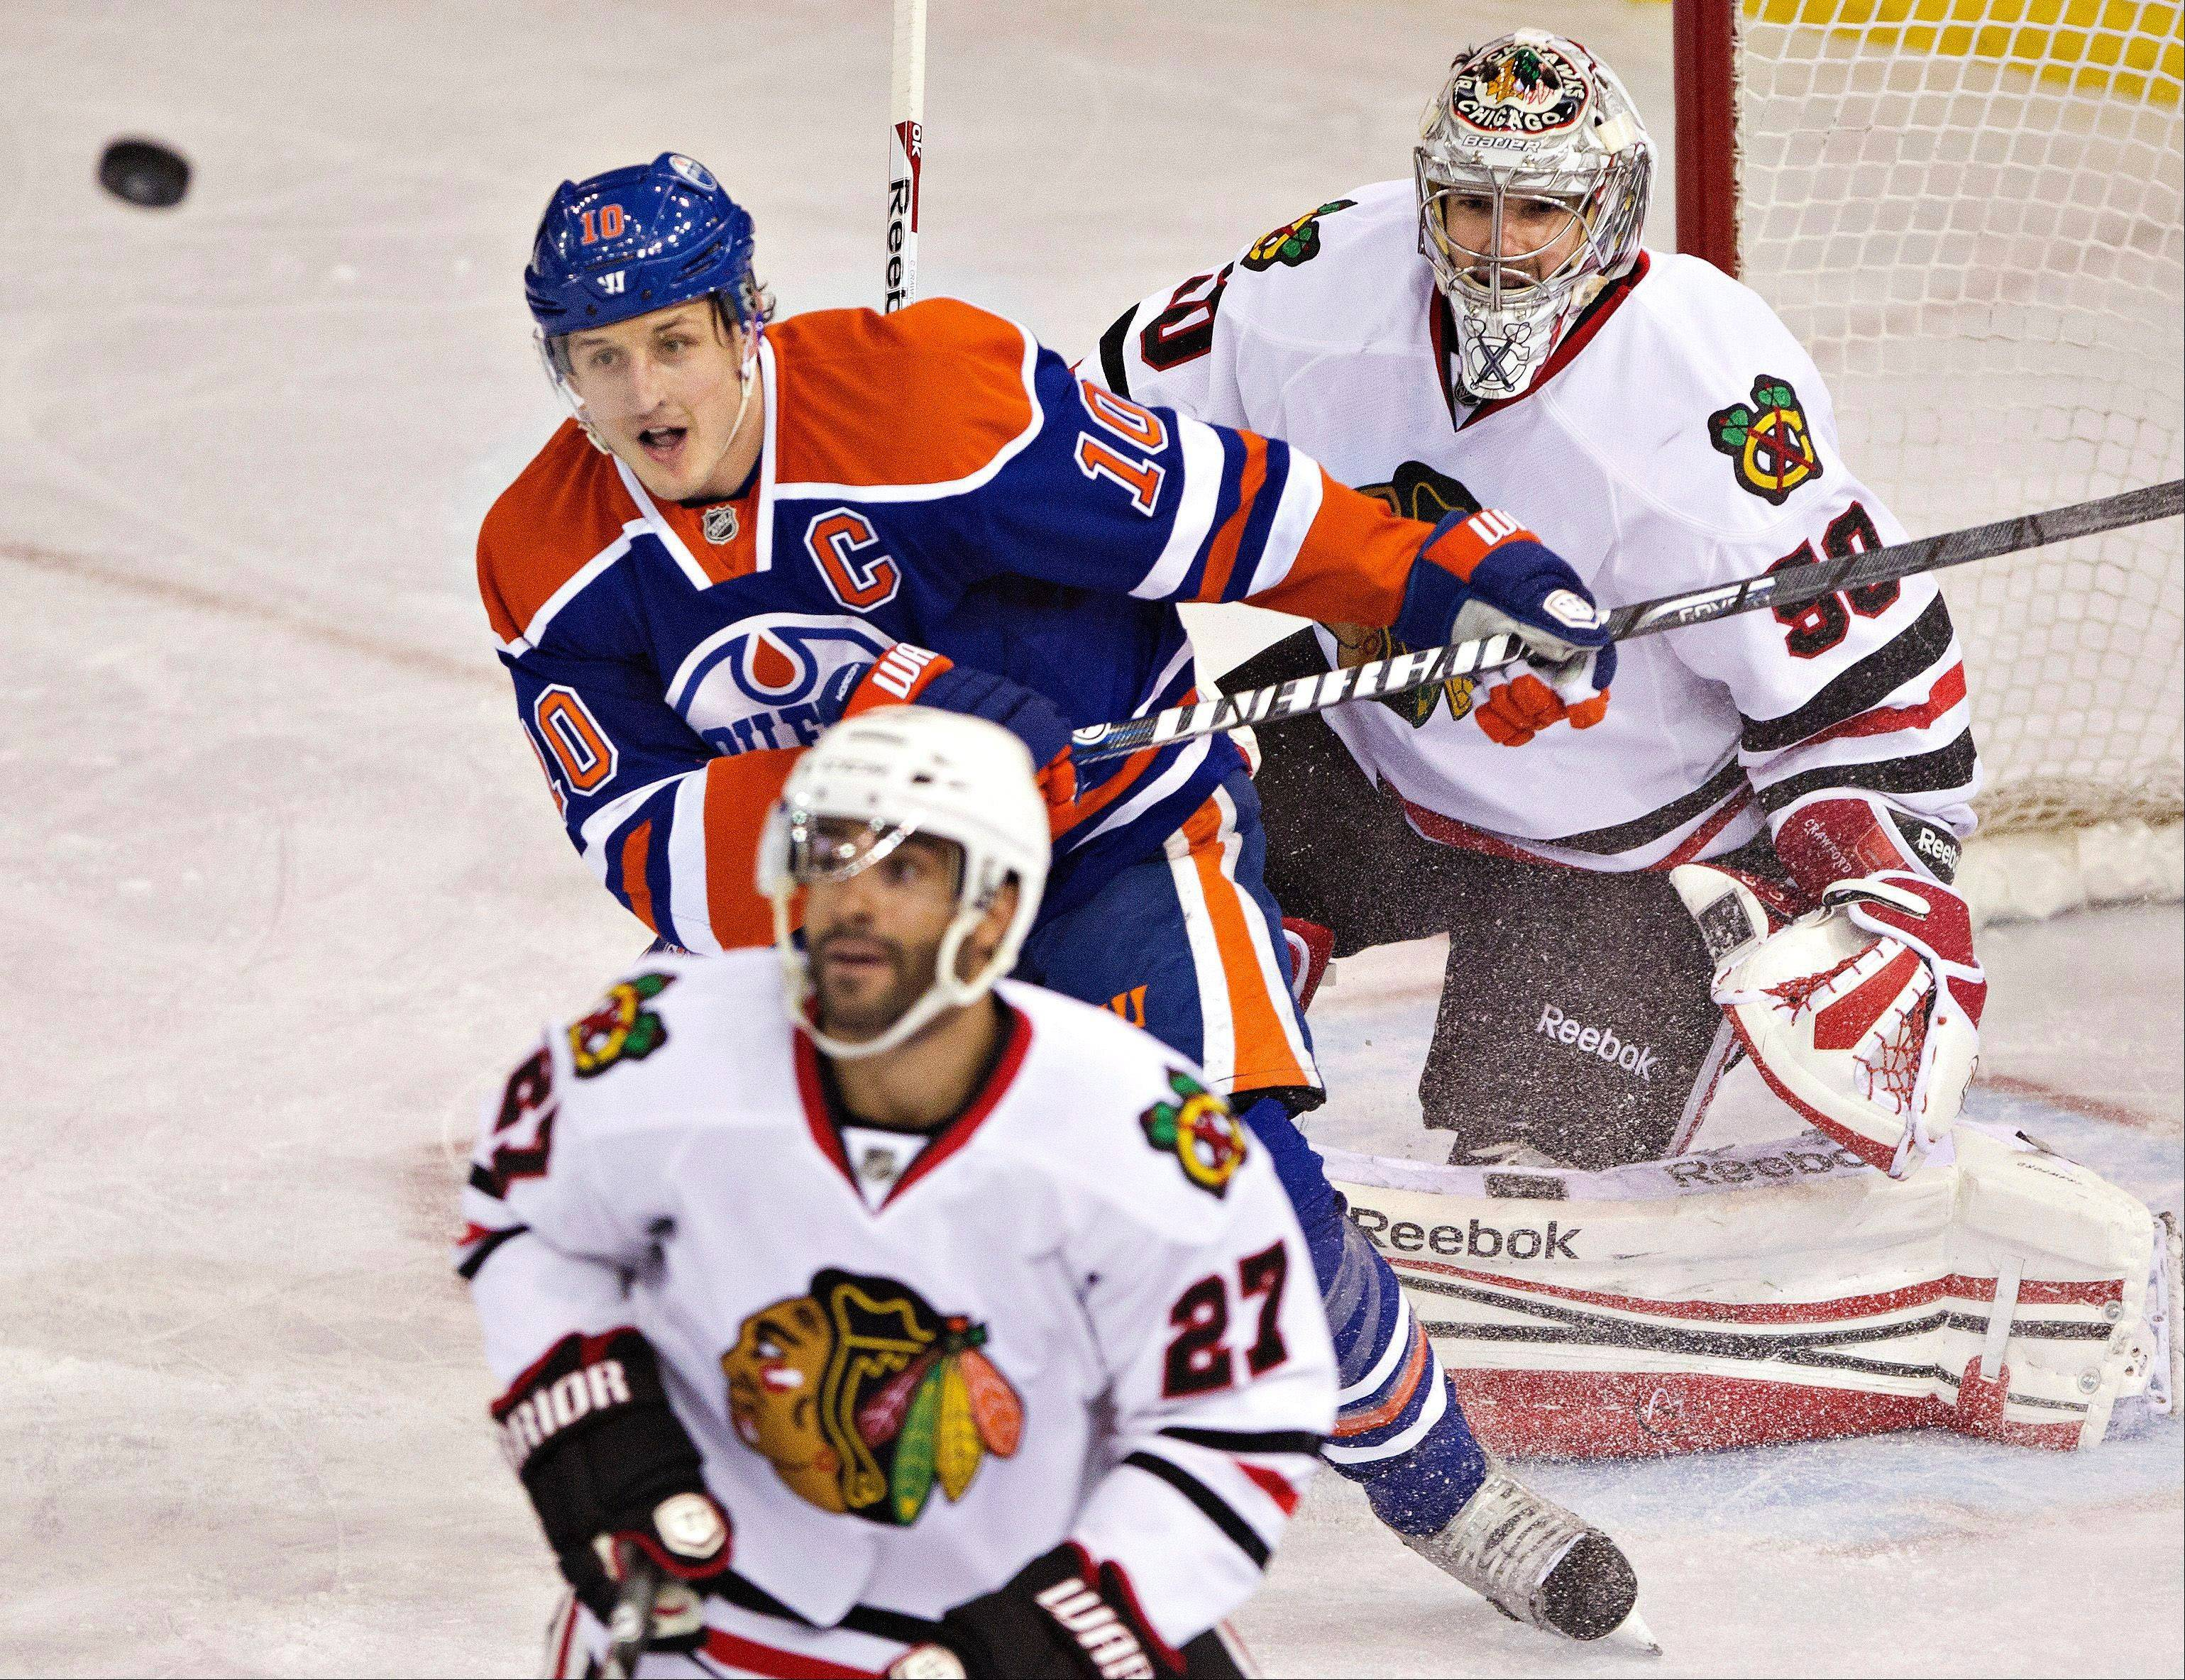 Chicago Blackhawks goalie Corey Crawford, top, Edmonton Oilers' Shawn Horcoff (10) and Blackhawks' Johnny Oduya (27) look for the rebound during the second period of their NHL hockey game in Edmonton, Alberta, Wednesday, April 24, 2013.